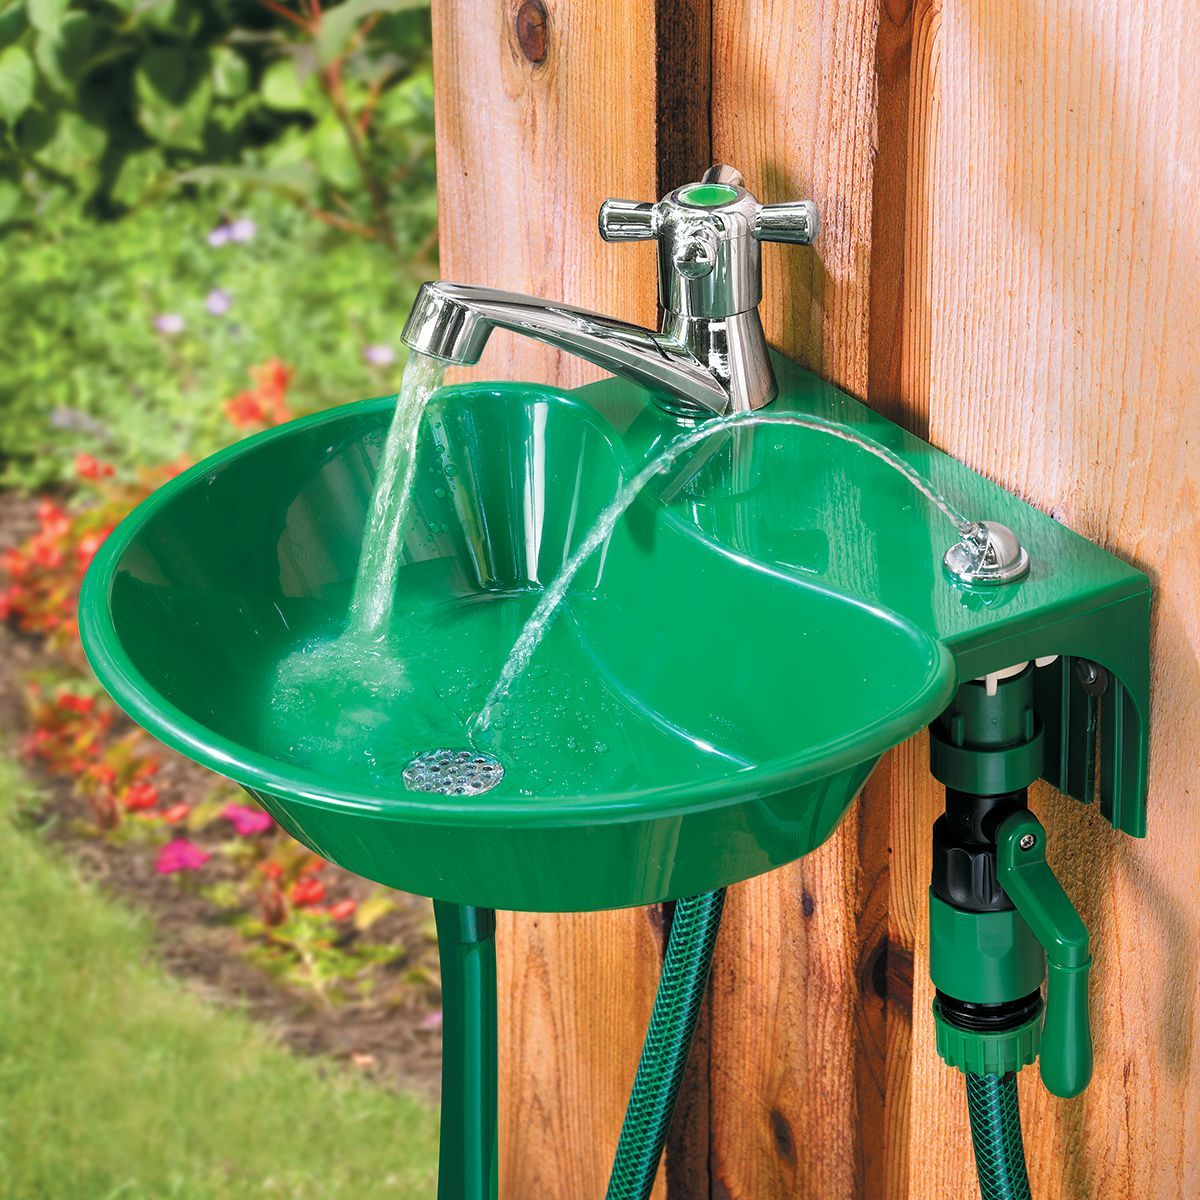 2-in-1 Outdoor Water Fountain And Faucet Ensures